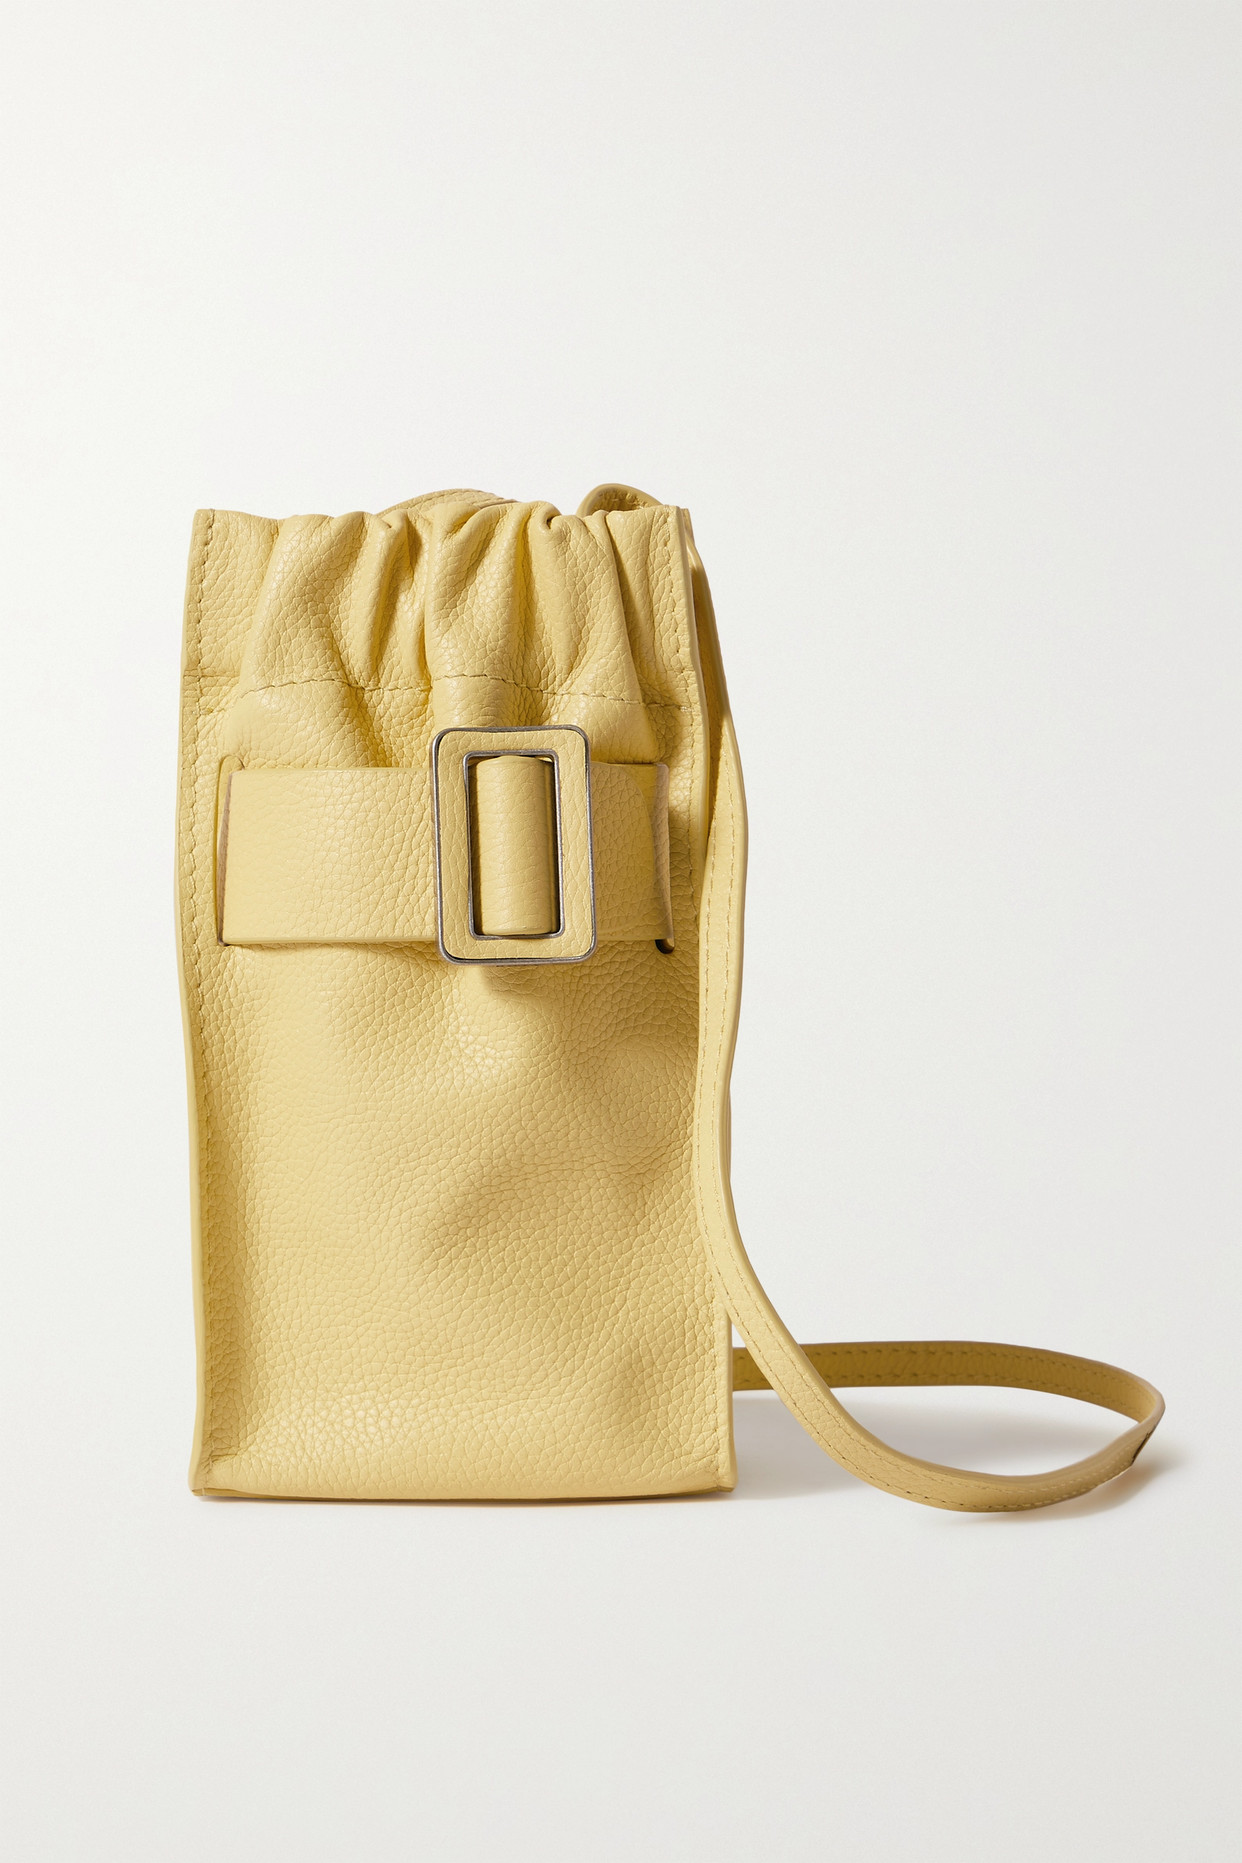 BOYY - Tall Scrunchy Buckled Textured-leather Shoulder Bag - Yellow - one size